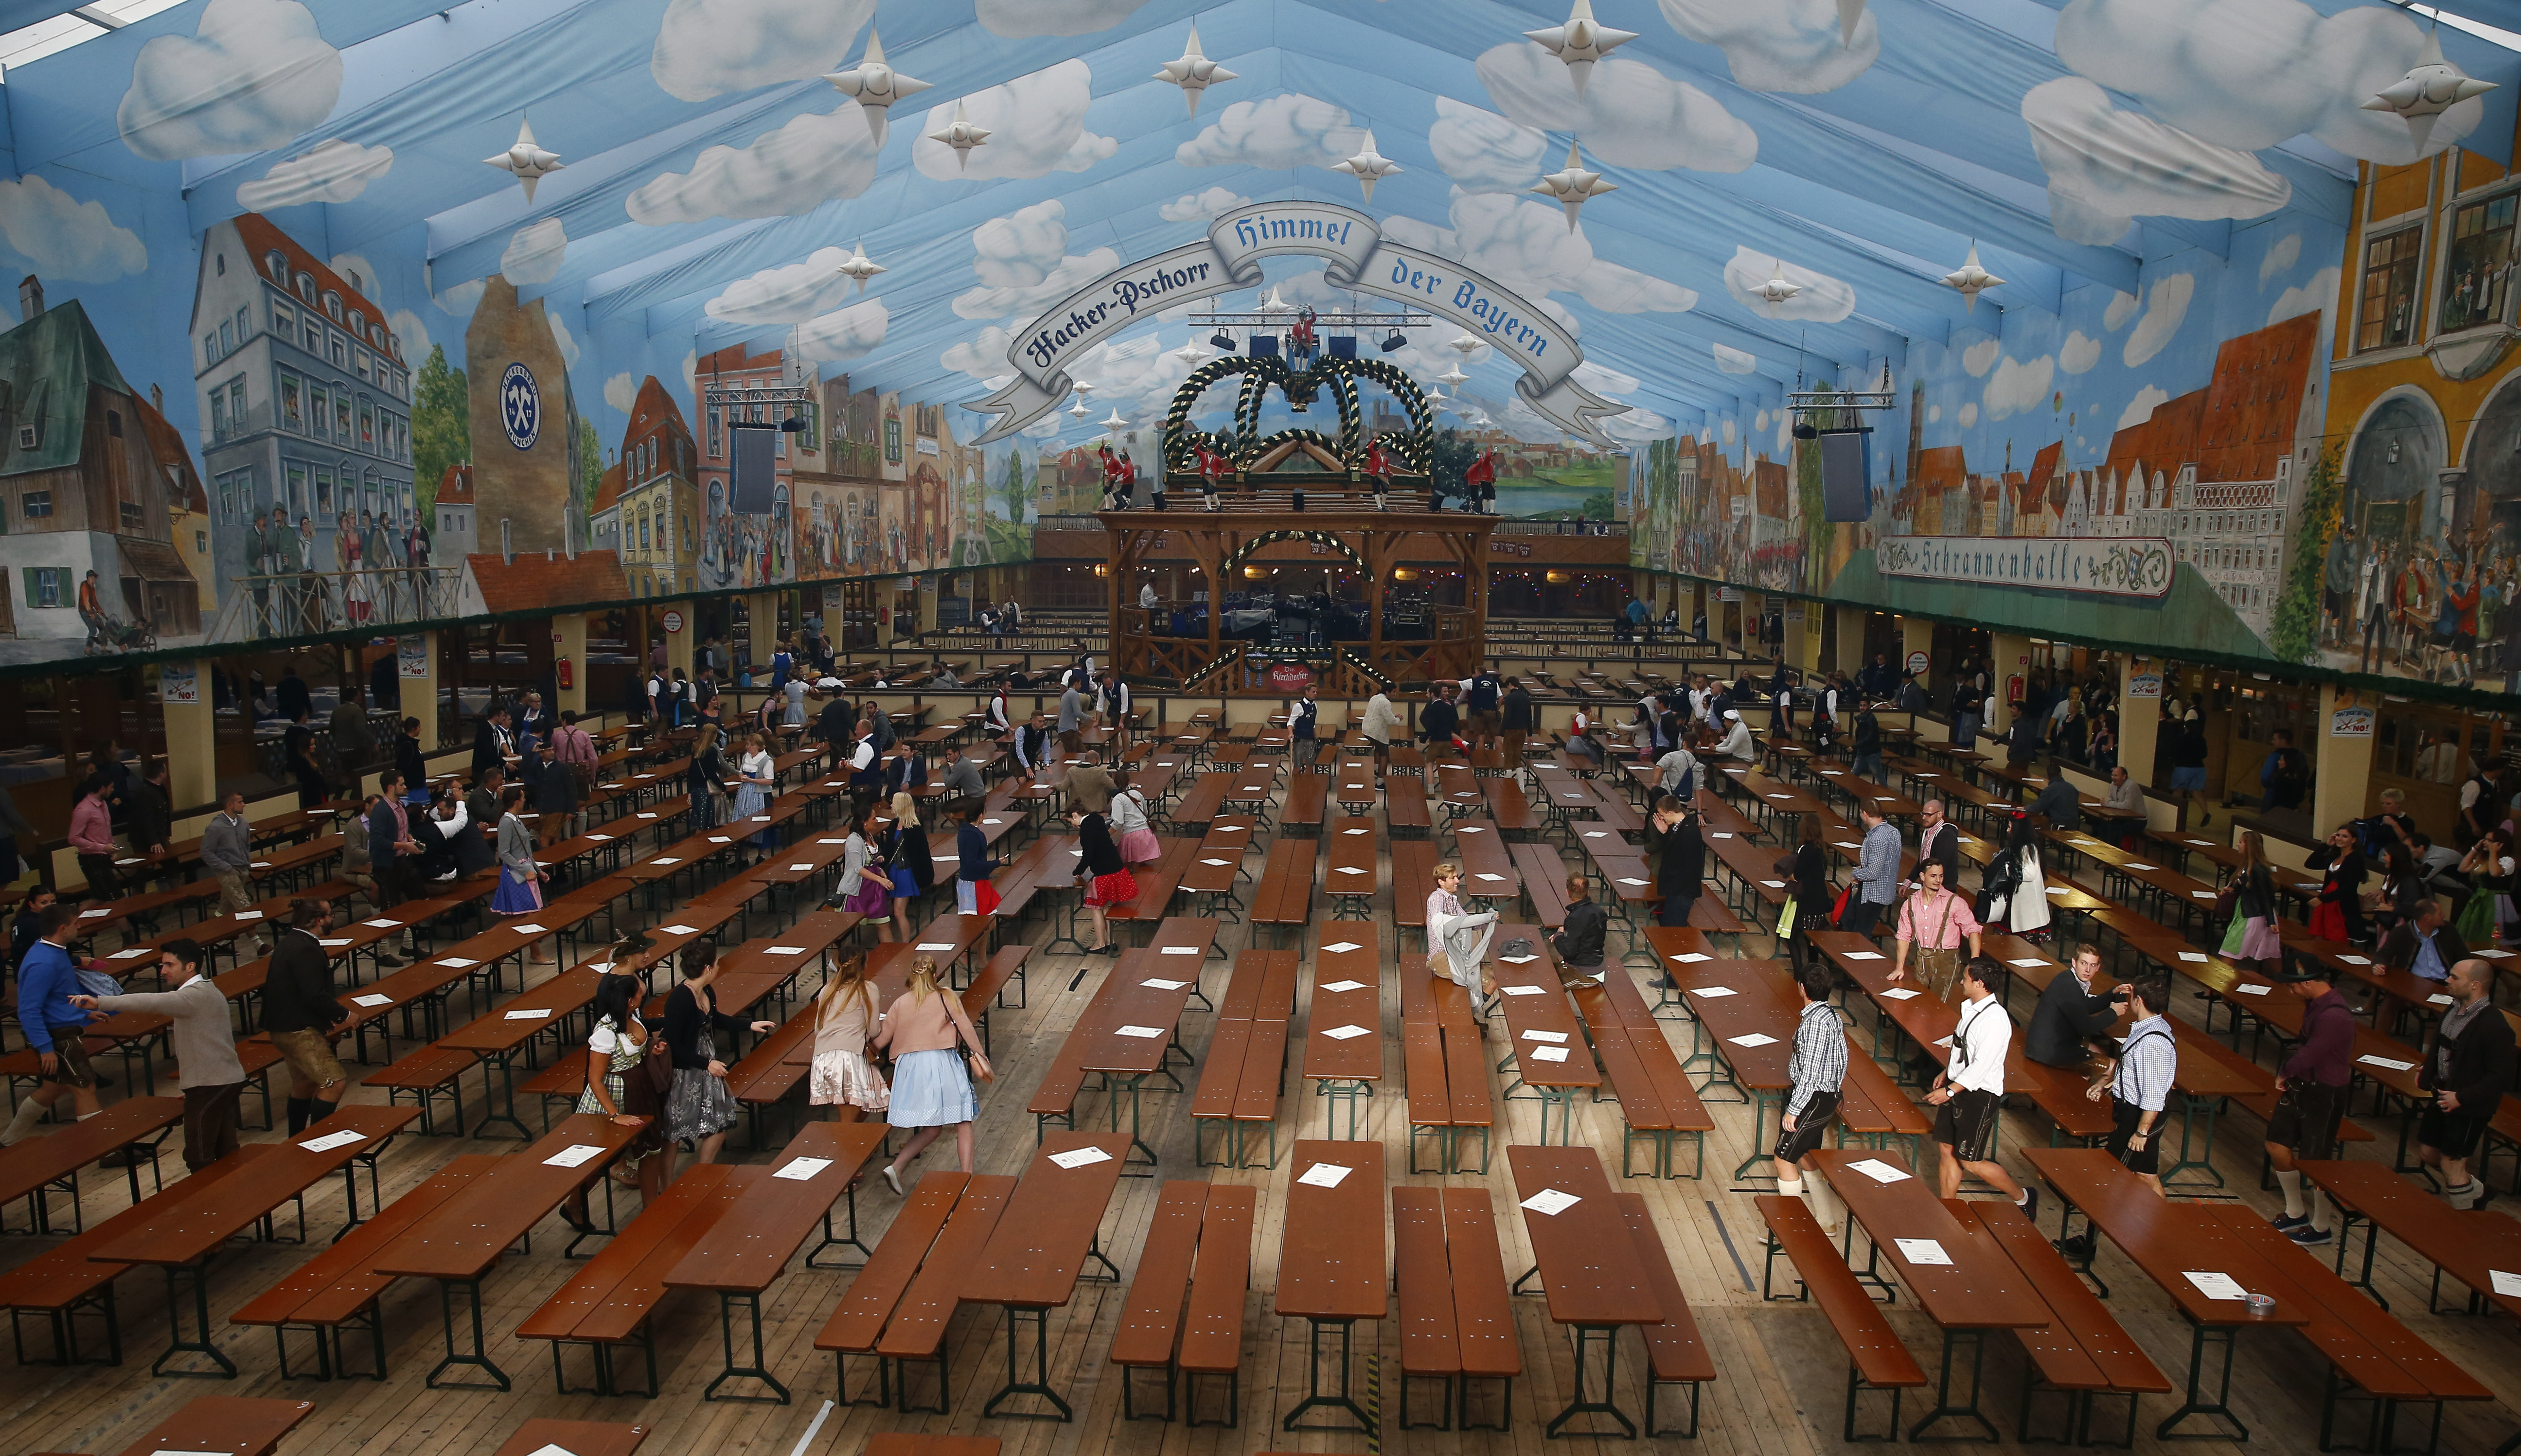 Customers fill a tent after the opening of the 182nd Oktoberfest in Munich, Germany, September 19, 2015. Millions of beer drinkers from around the world will come to the Bavarian capital over the next two weeks for Oktoberfest, which starts today and runs until October 4, 2015. REUTERS/Michael Dalder - RTS1U81